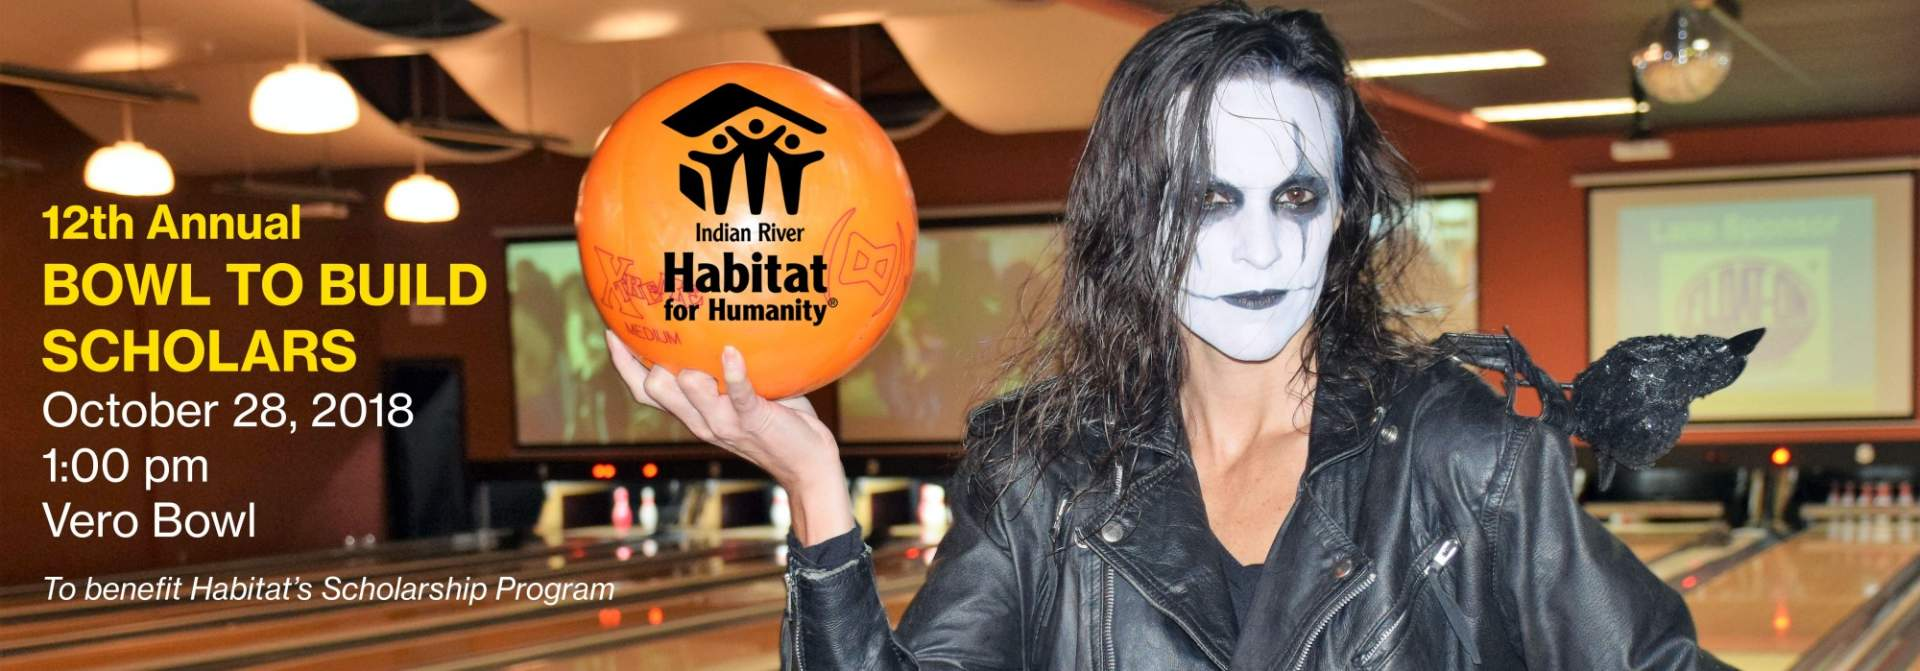 Bowl to Build Scholars - Indian River Habitat for Humanity